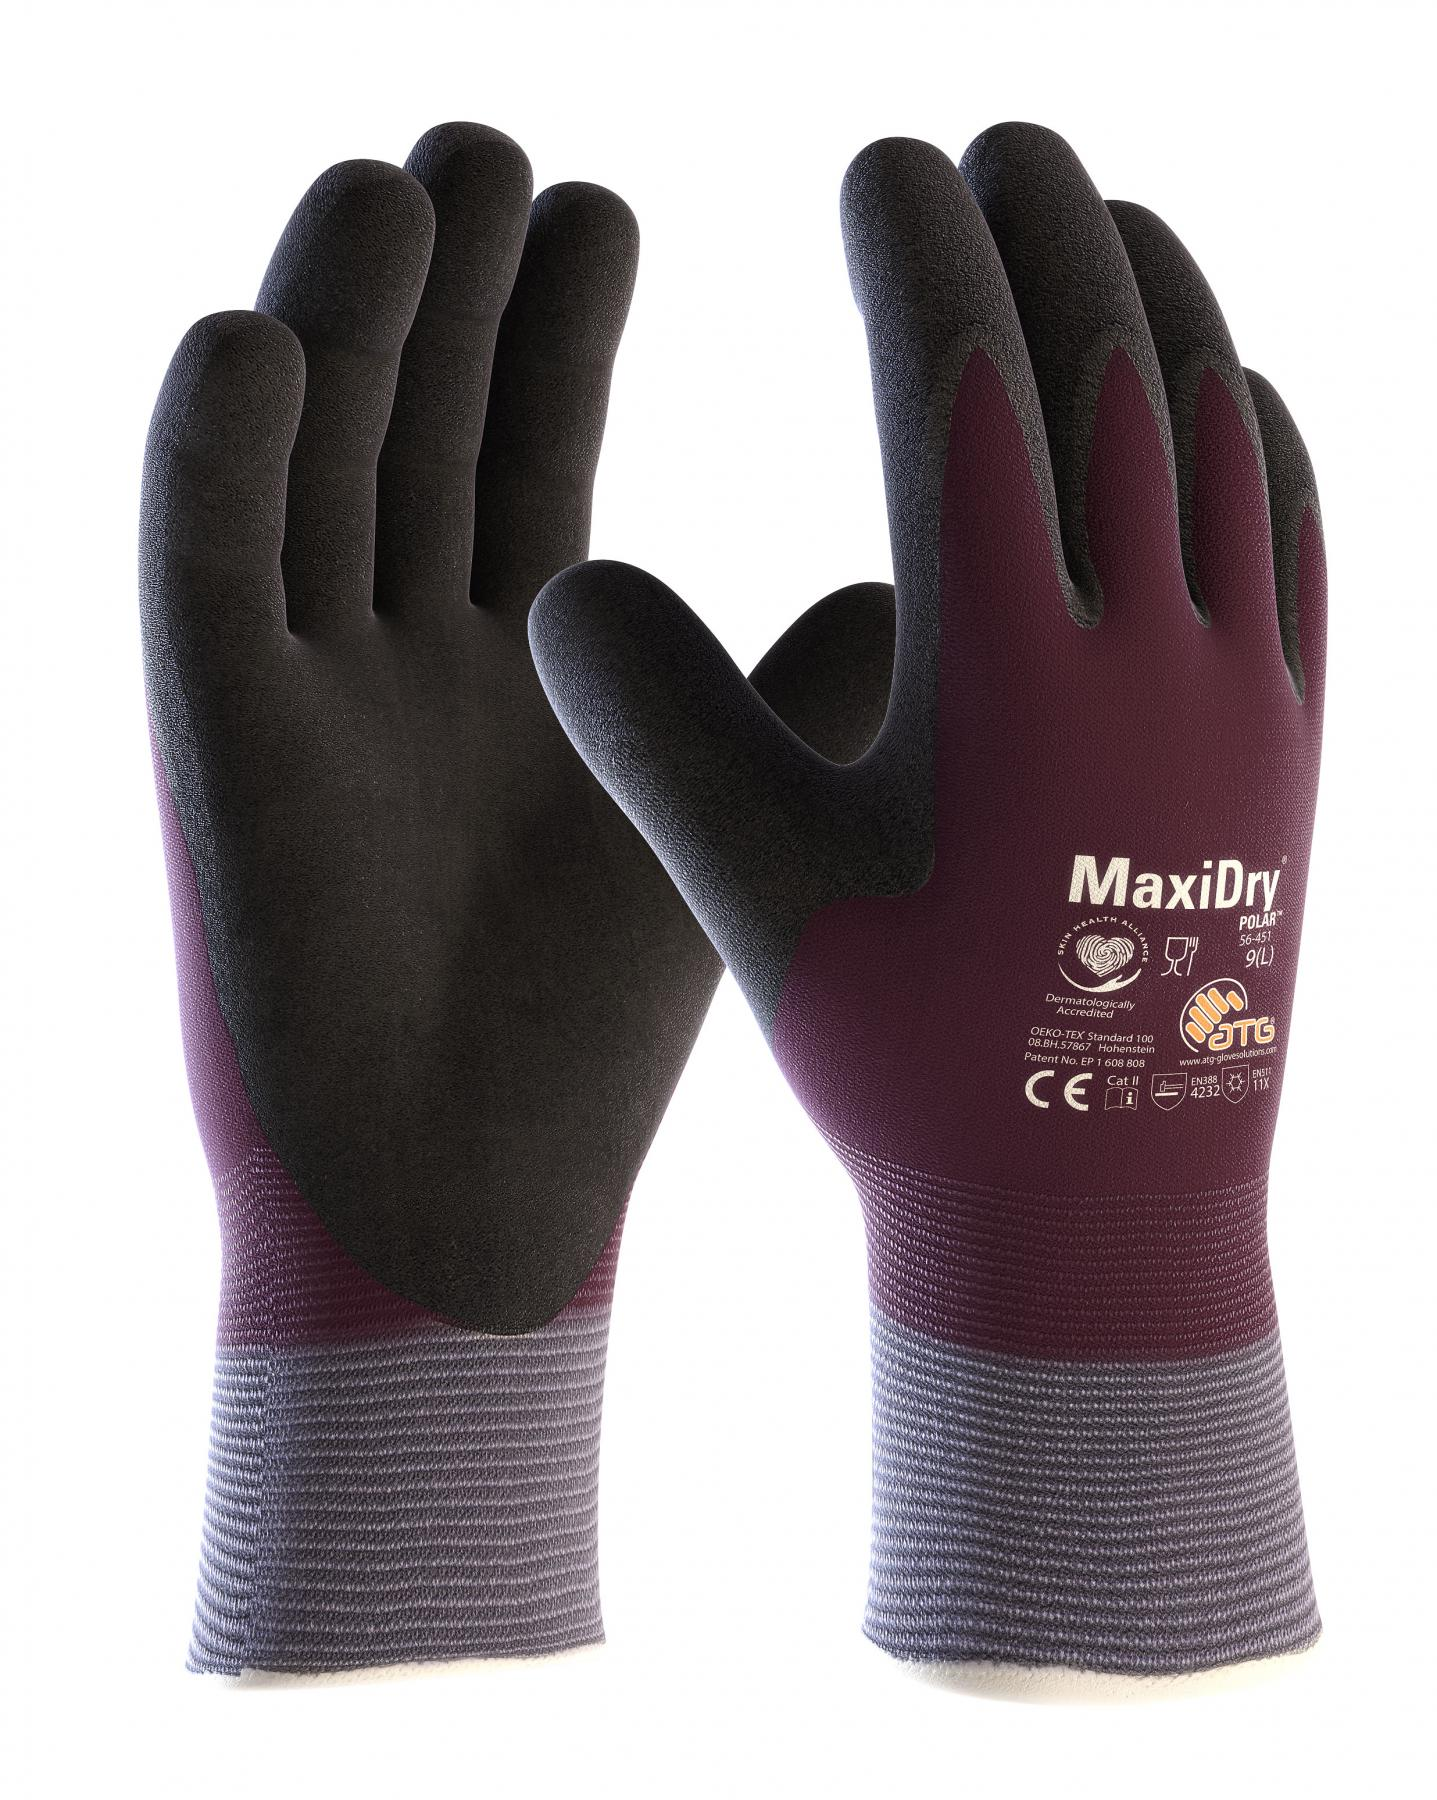 Armour Safety Products Ltd. - MaxiDry Zero Liquidproof Thermal Glove